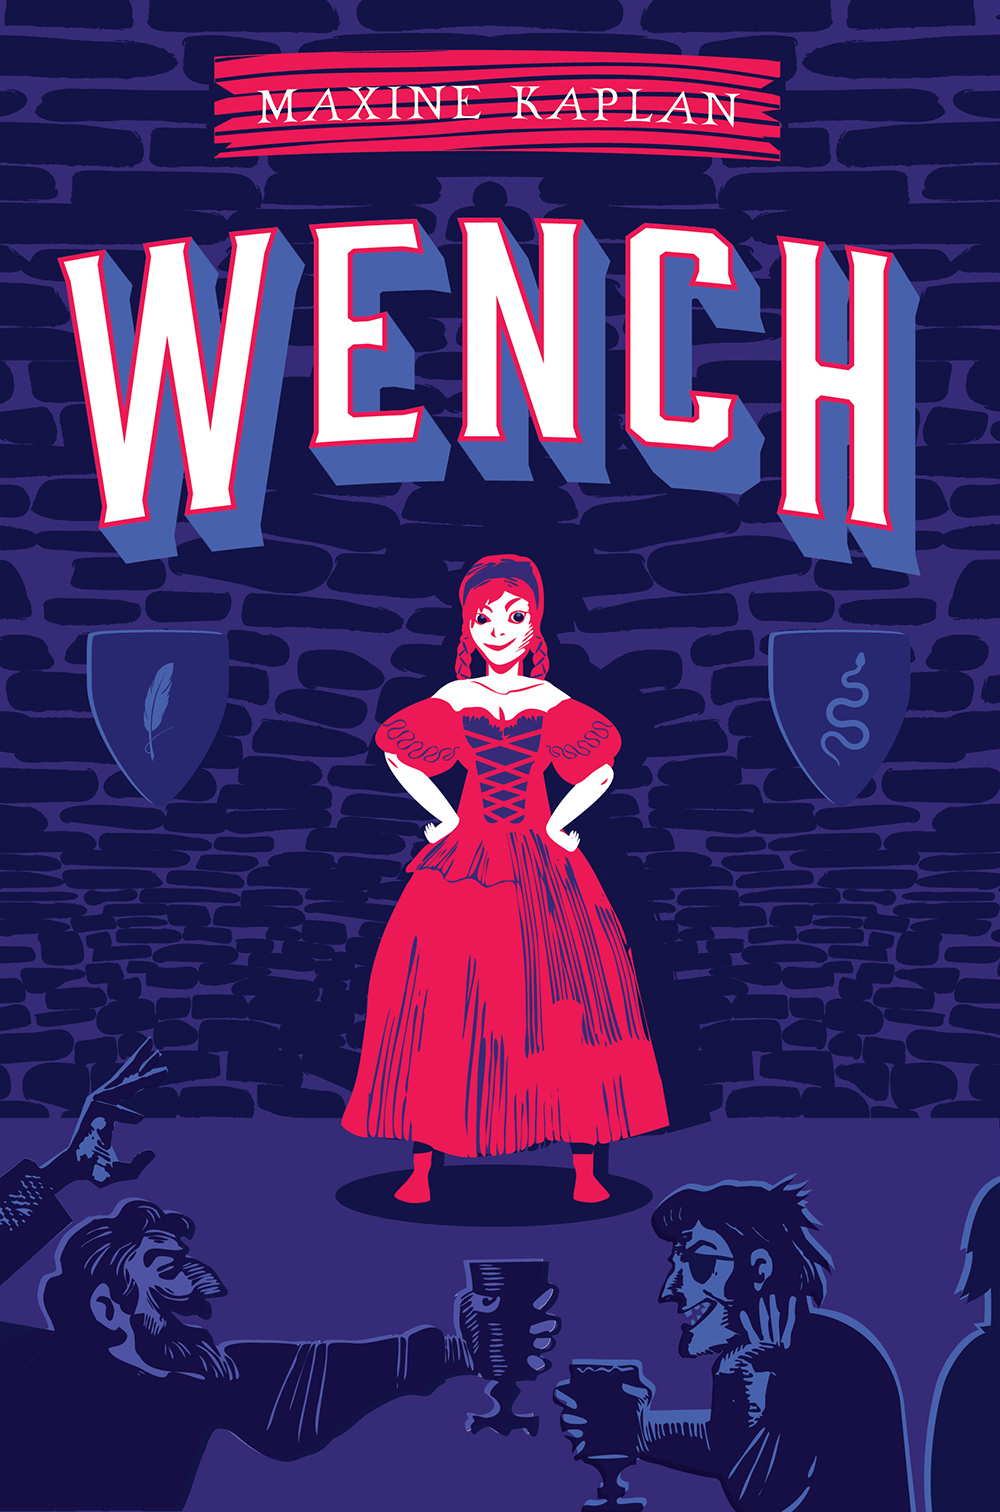 Wench by Maxine Kaplan